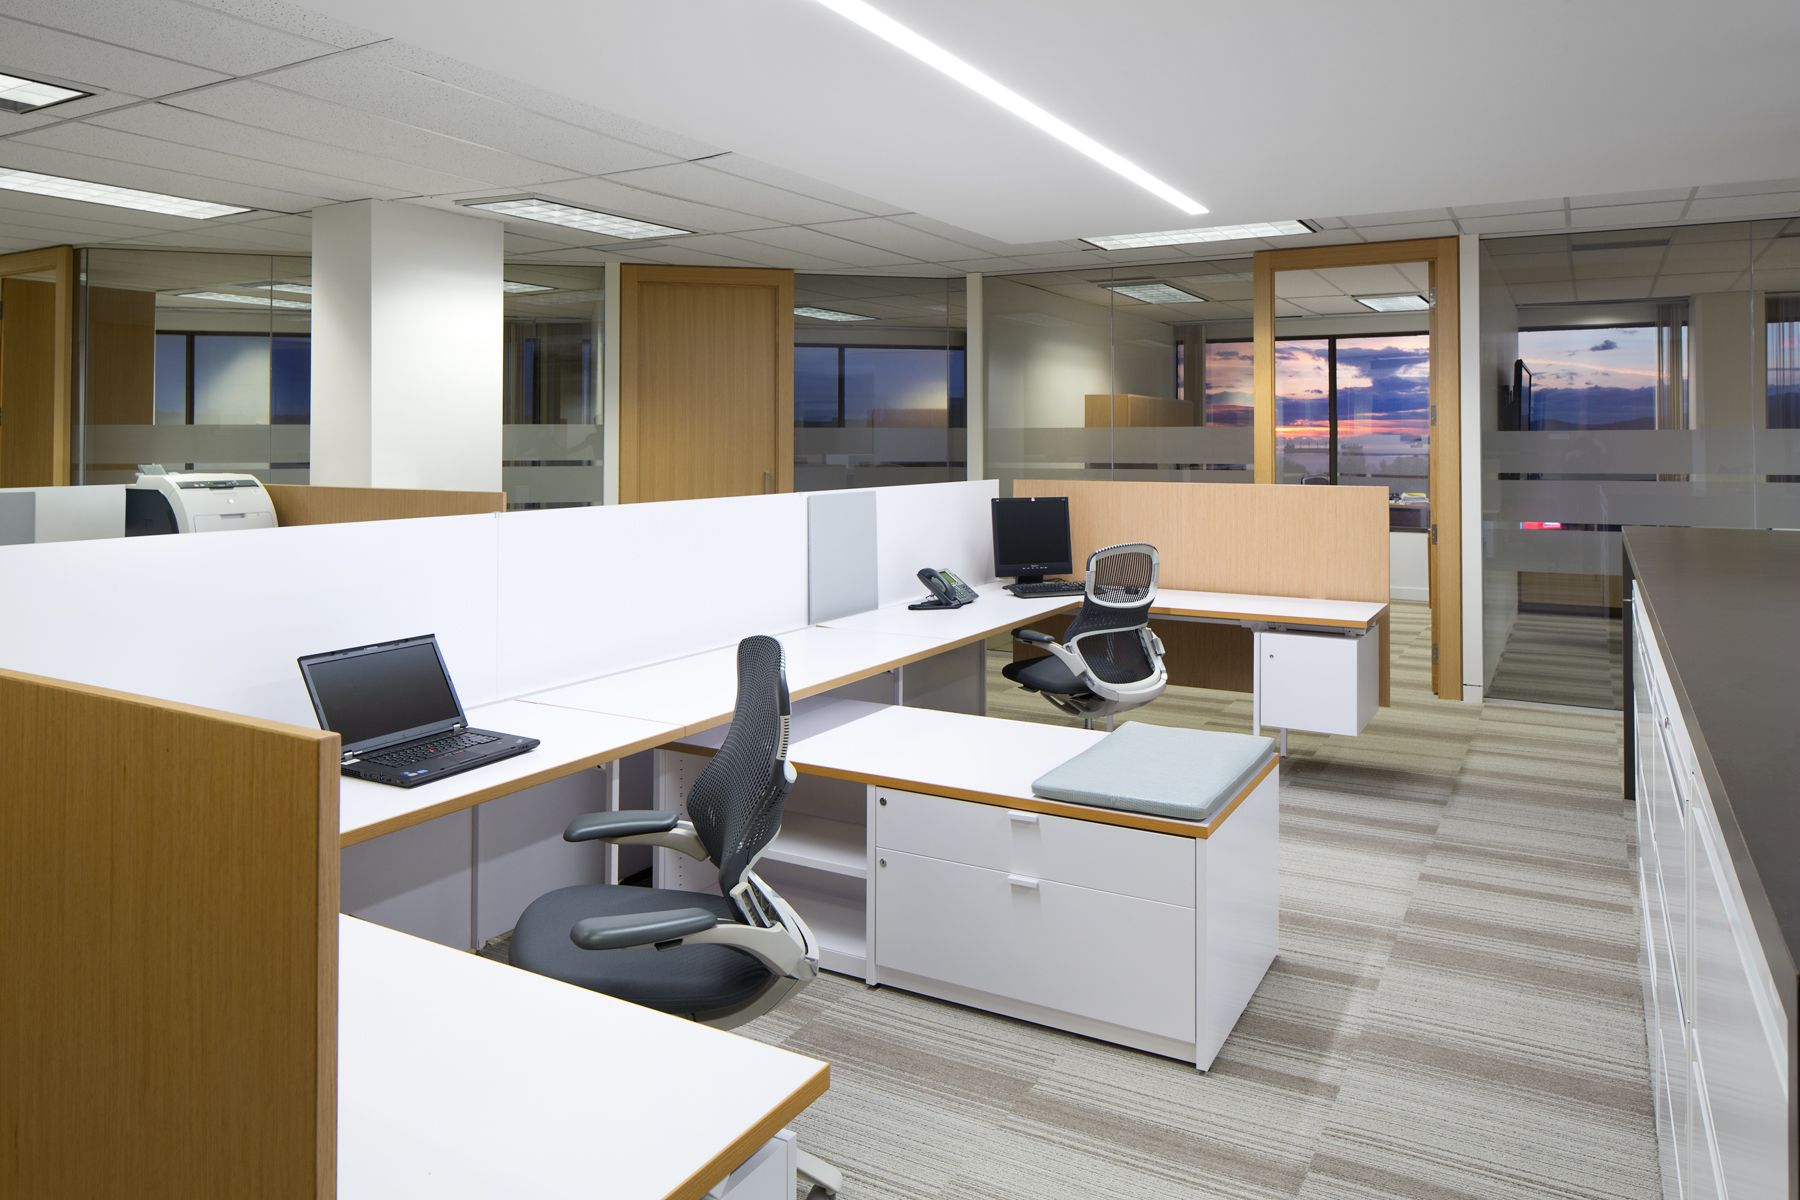 Ssdg interiors inc workplace executive office for Office design vancouver